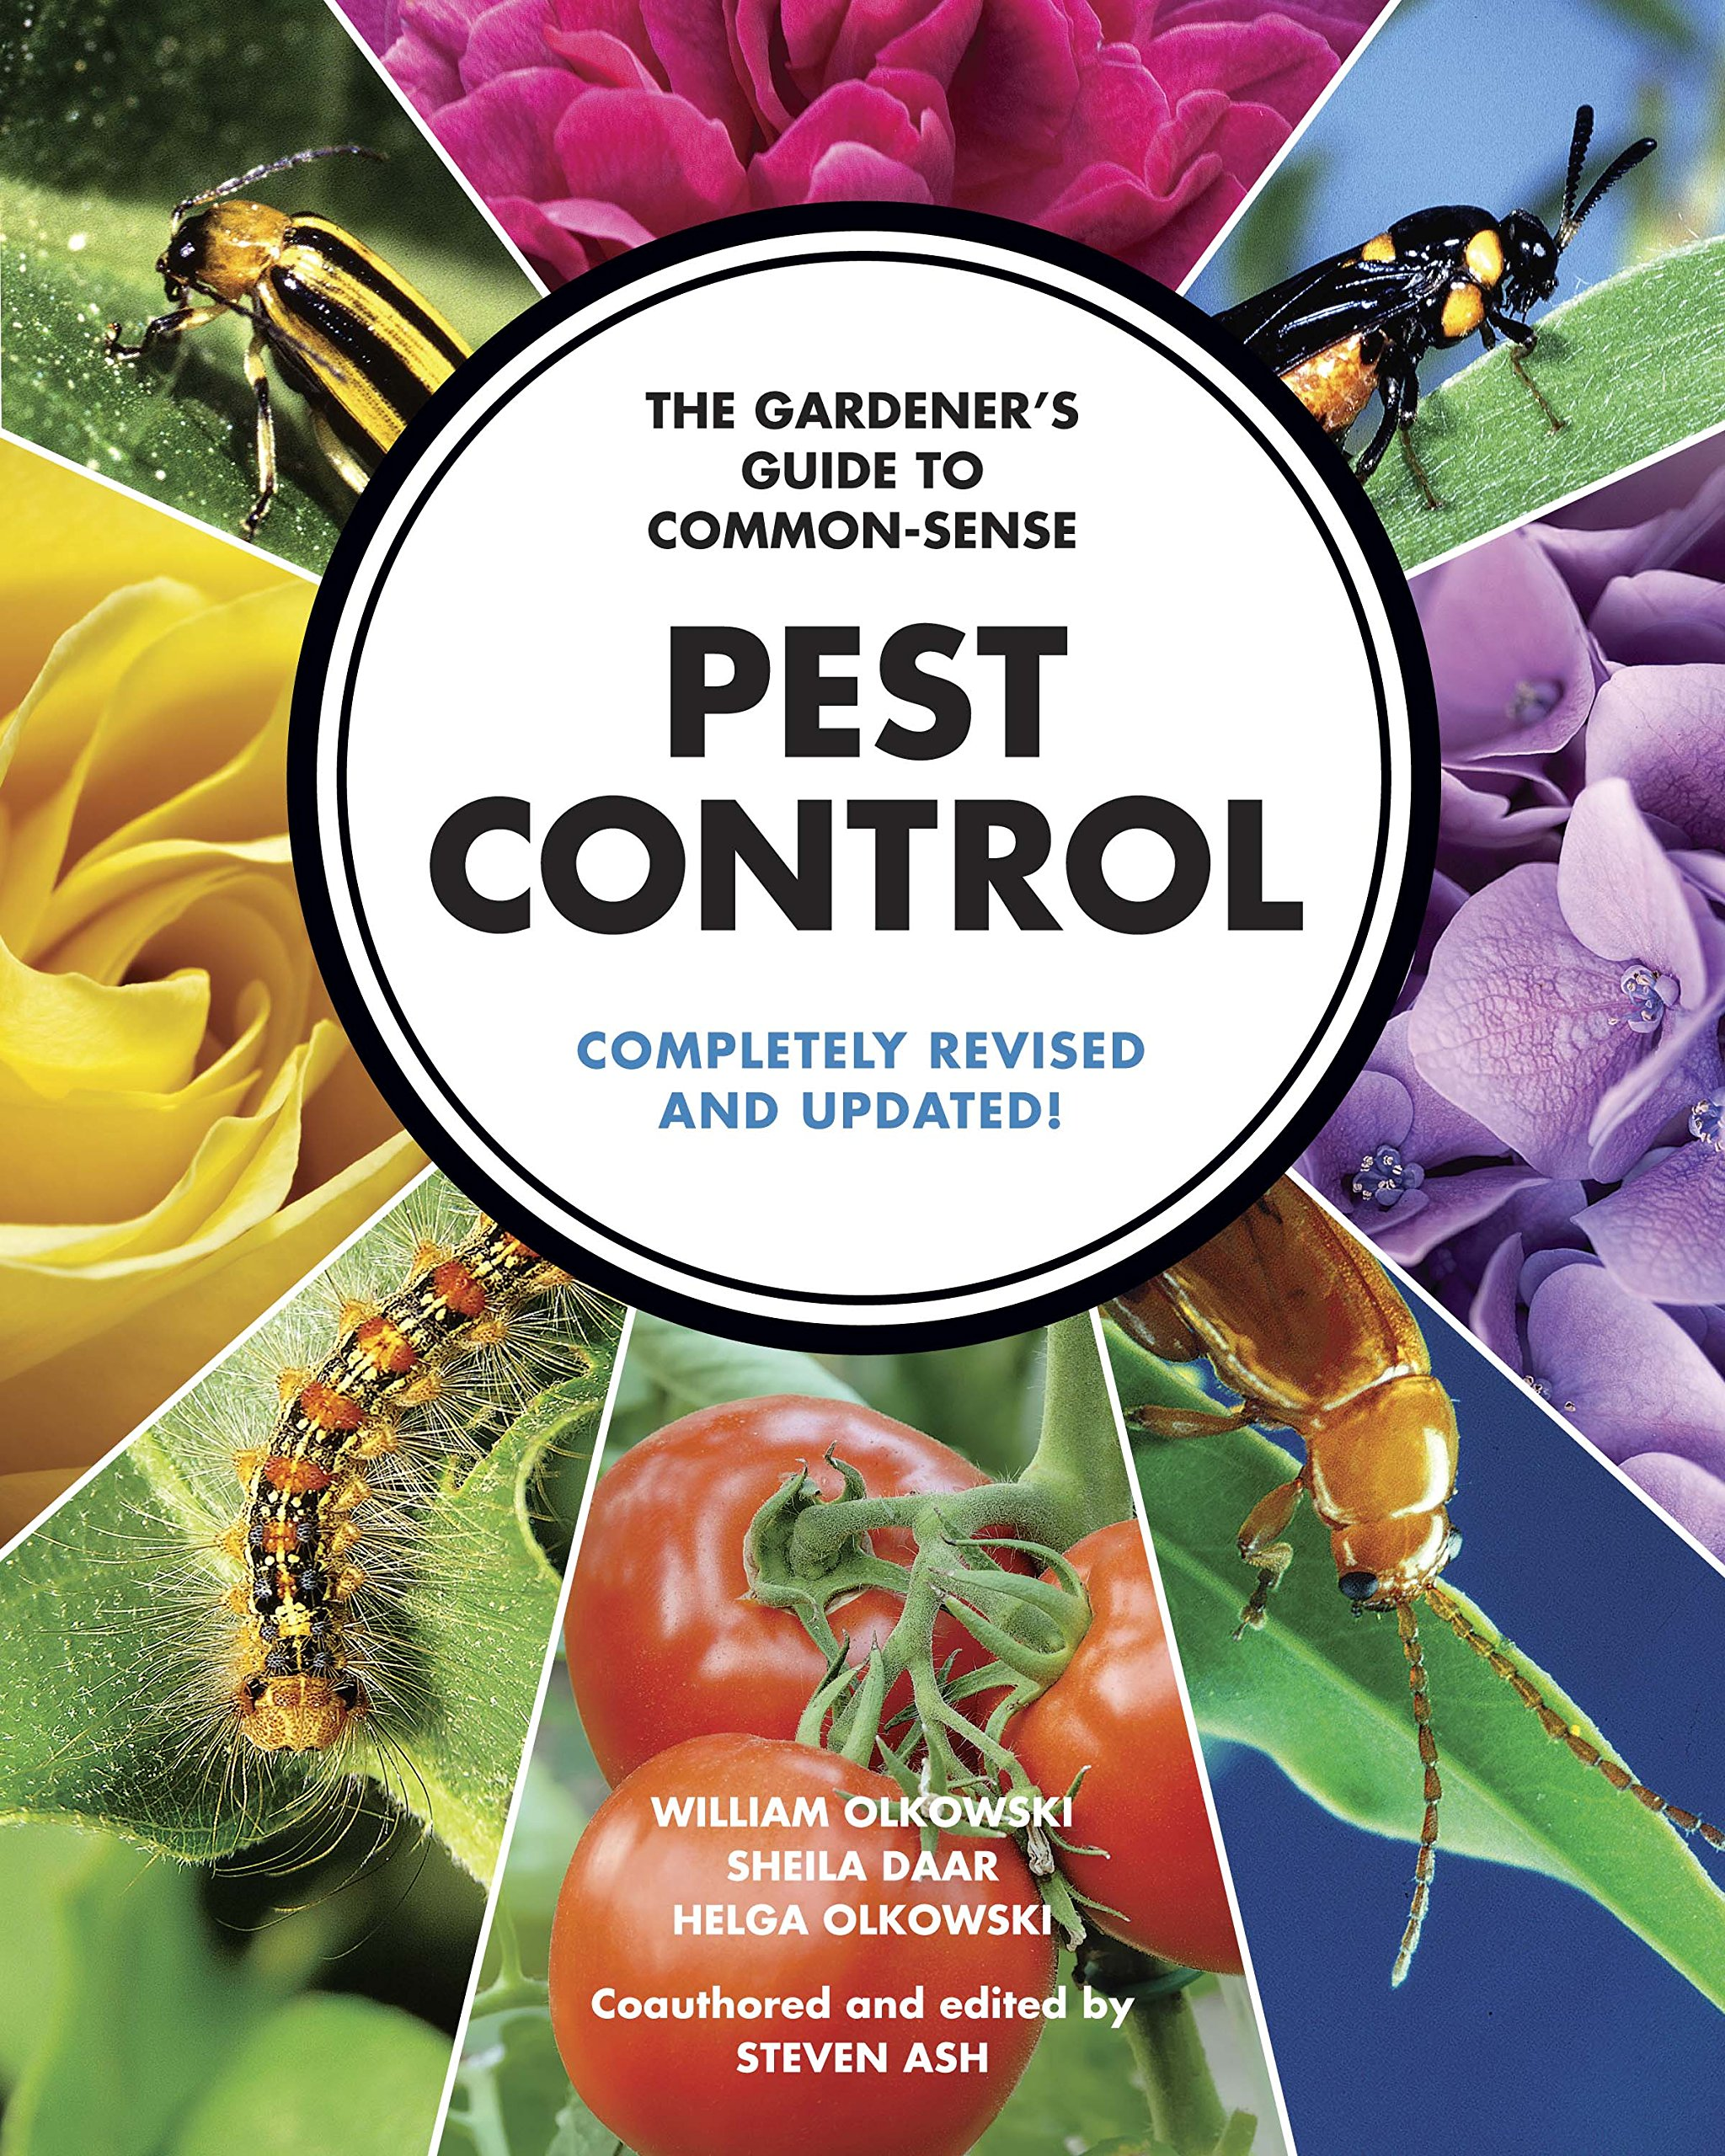 The Gardener's Guide to Common-Sense Pest Control: Completely Revised and Updated by William Olkowski